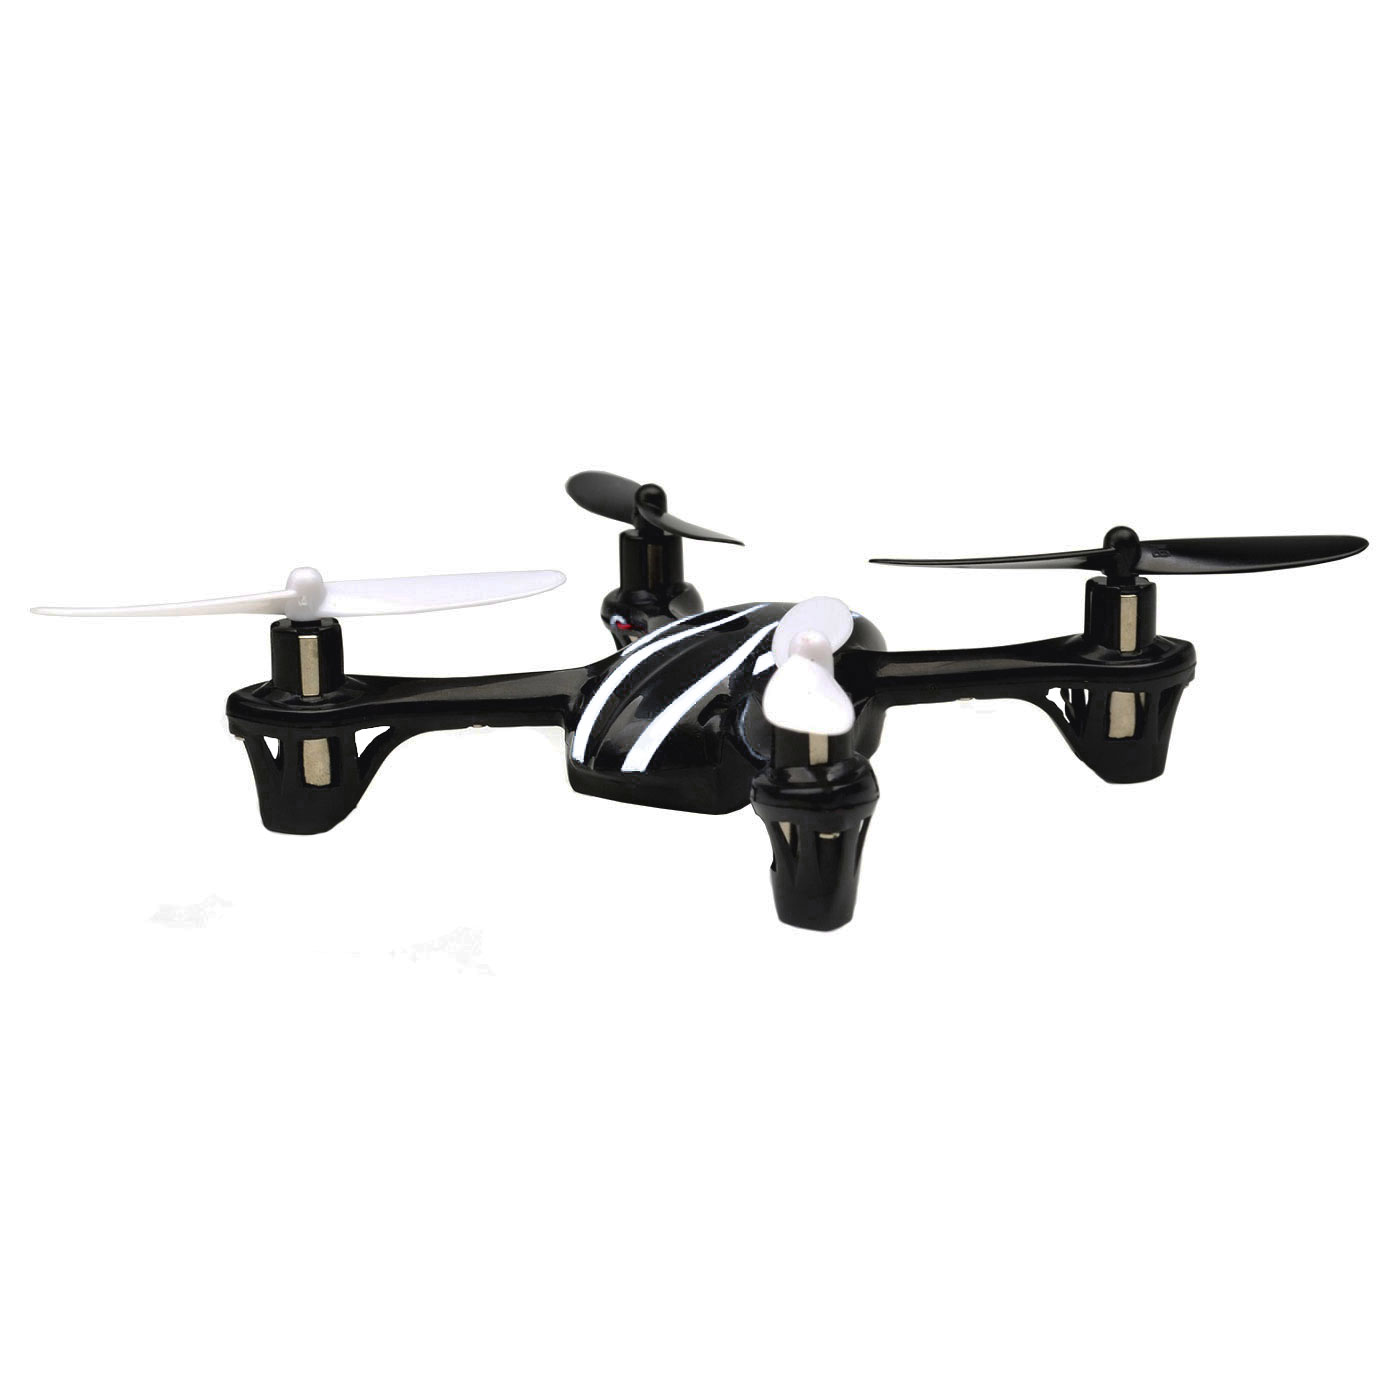 drone with gps navigation with Pb00189194 on Watch moreover Fra also Watch additionally PB00194451 likewise Walkera Voyager 3 Dual Navigation Fpv Quadcopter With 4k Camera.